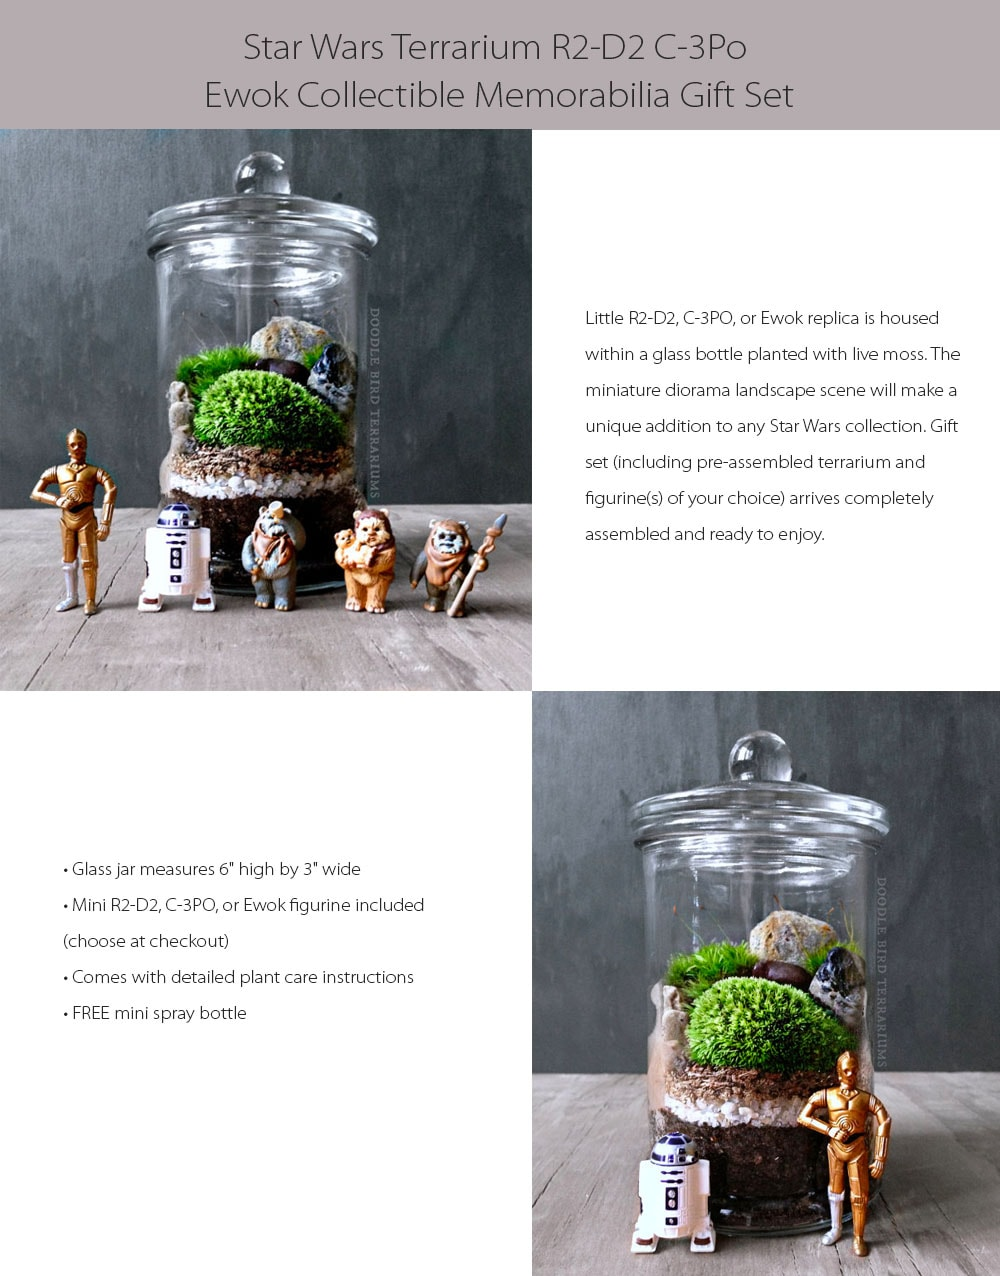 Star Wars Terrarium Creative Vase for Your Desk